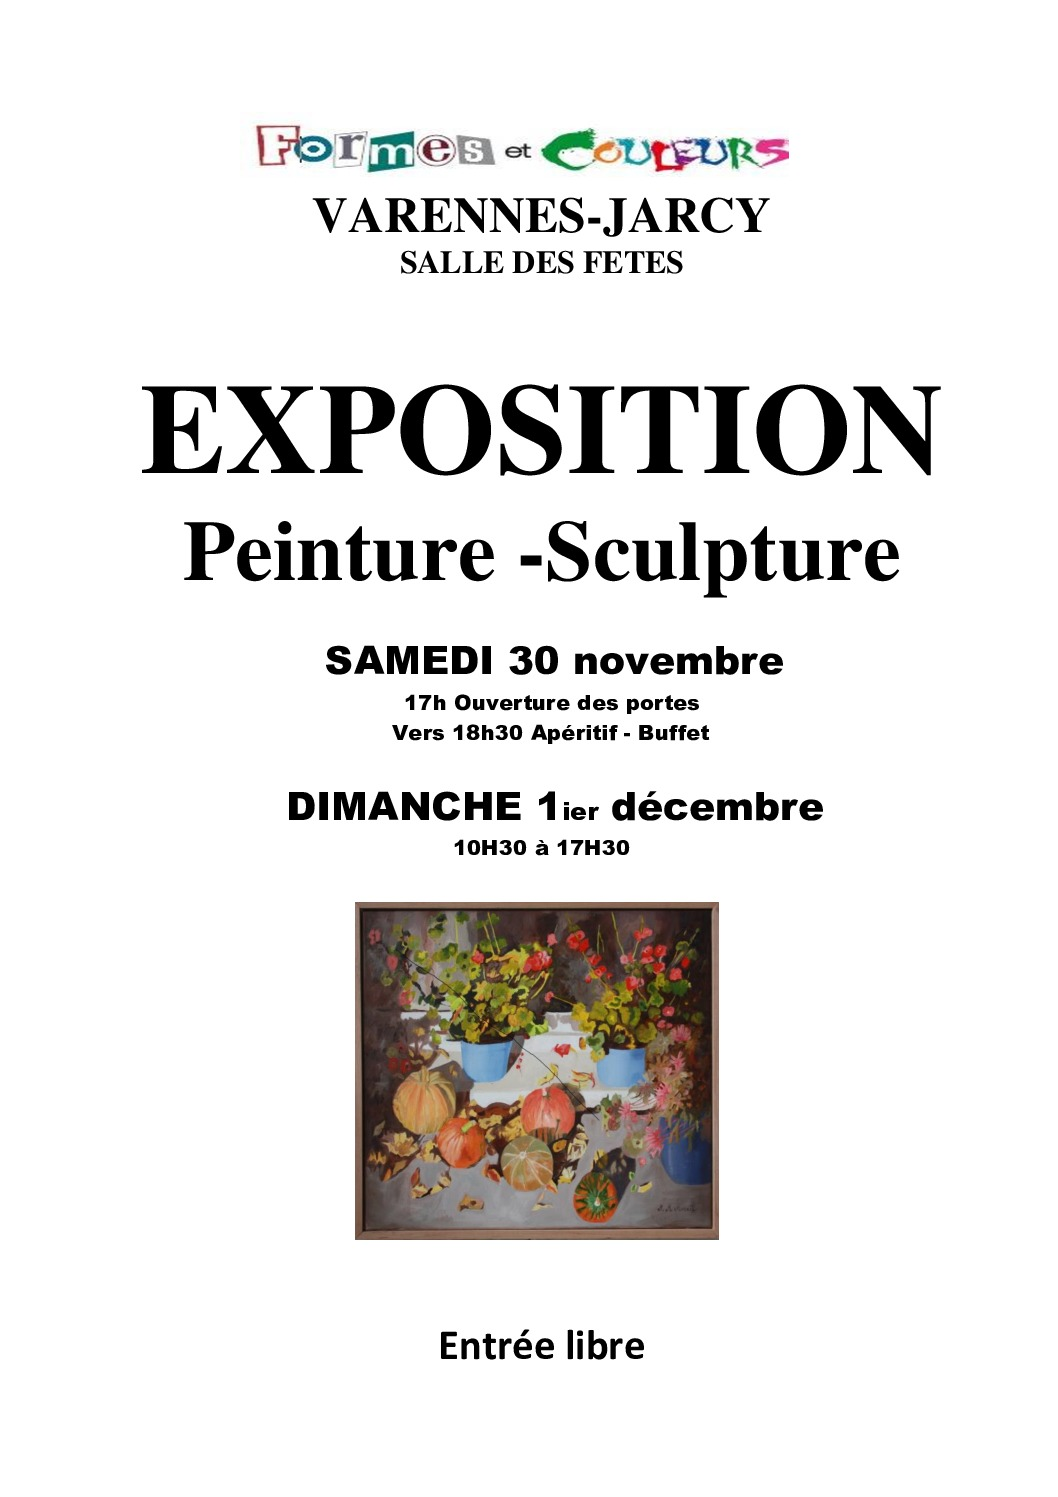 thumbnail of Affiche 2019 expo